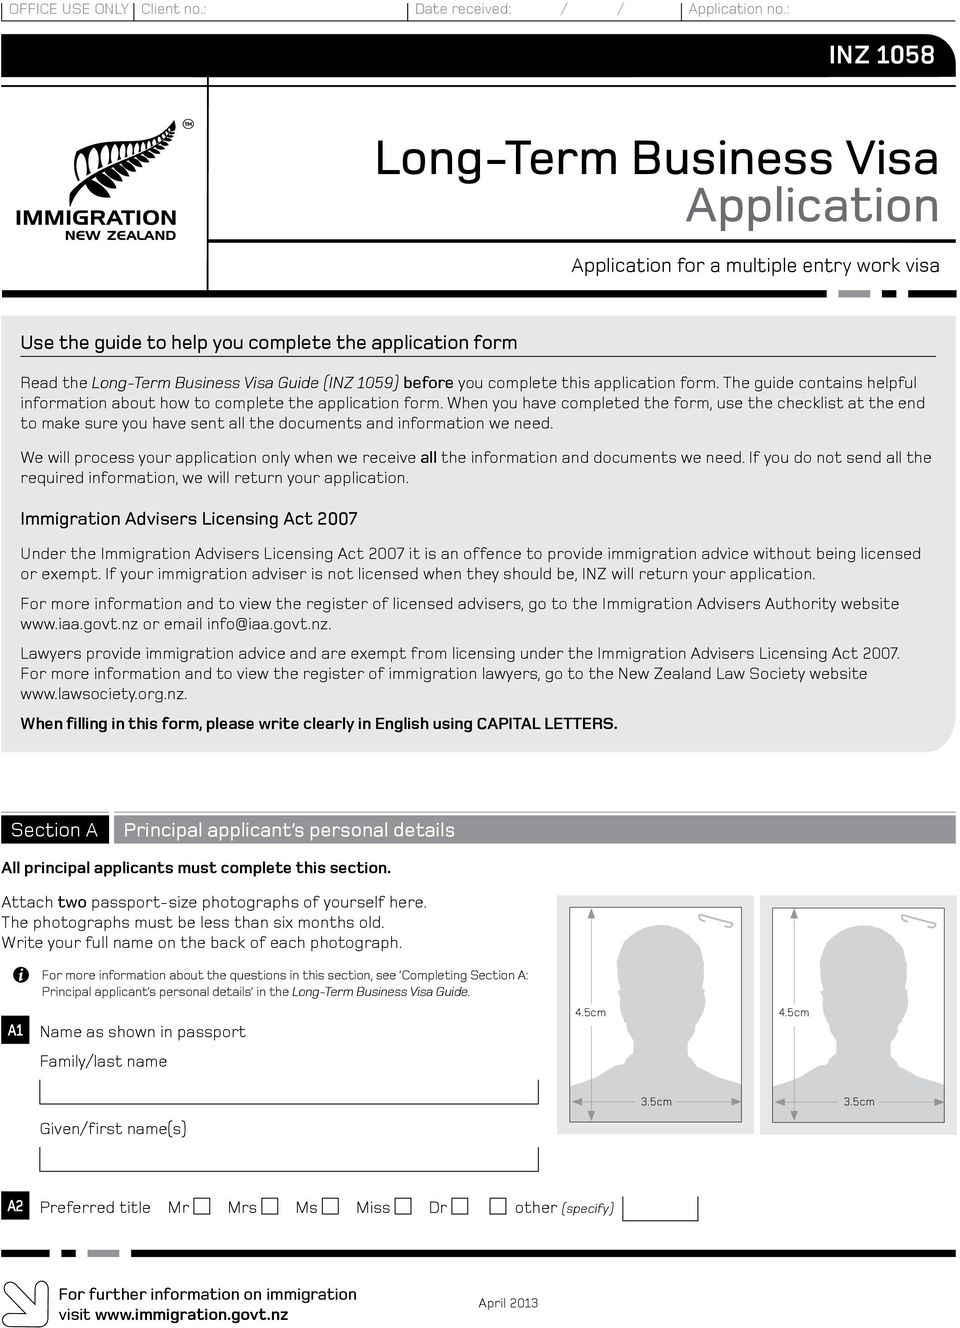 before you complete this application form. The guide contains helpful information about how to complete the application form.